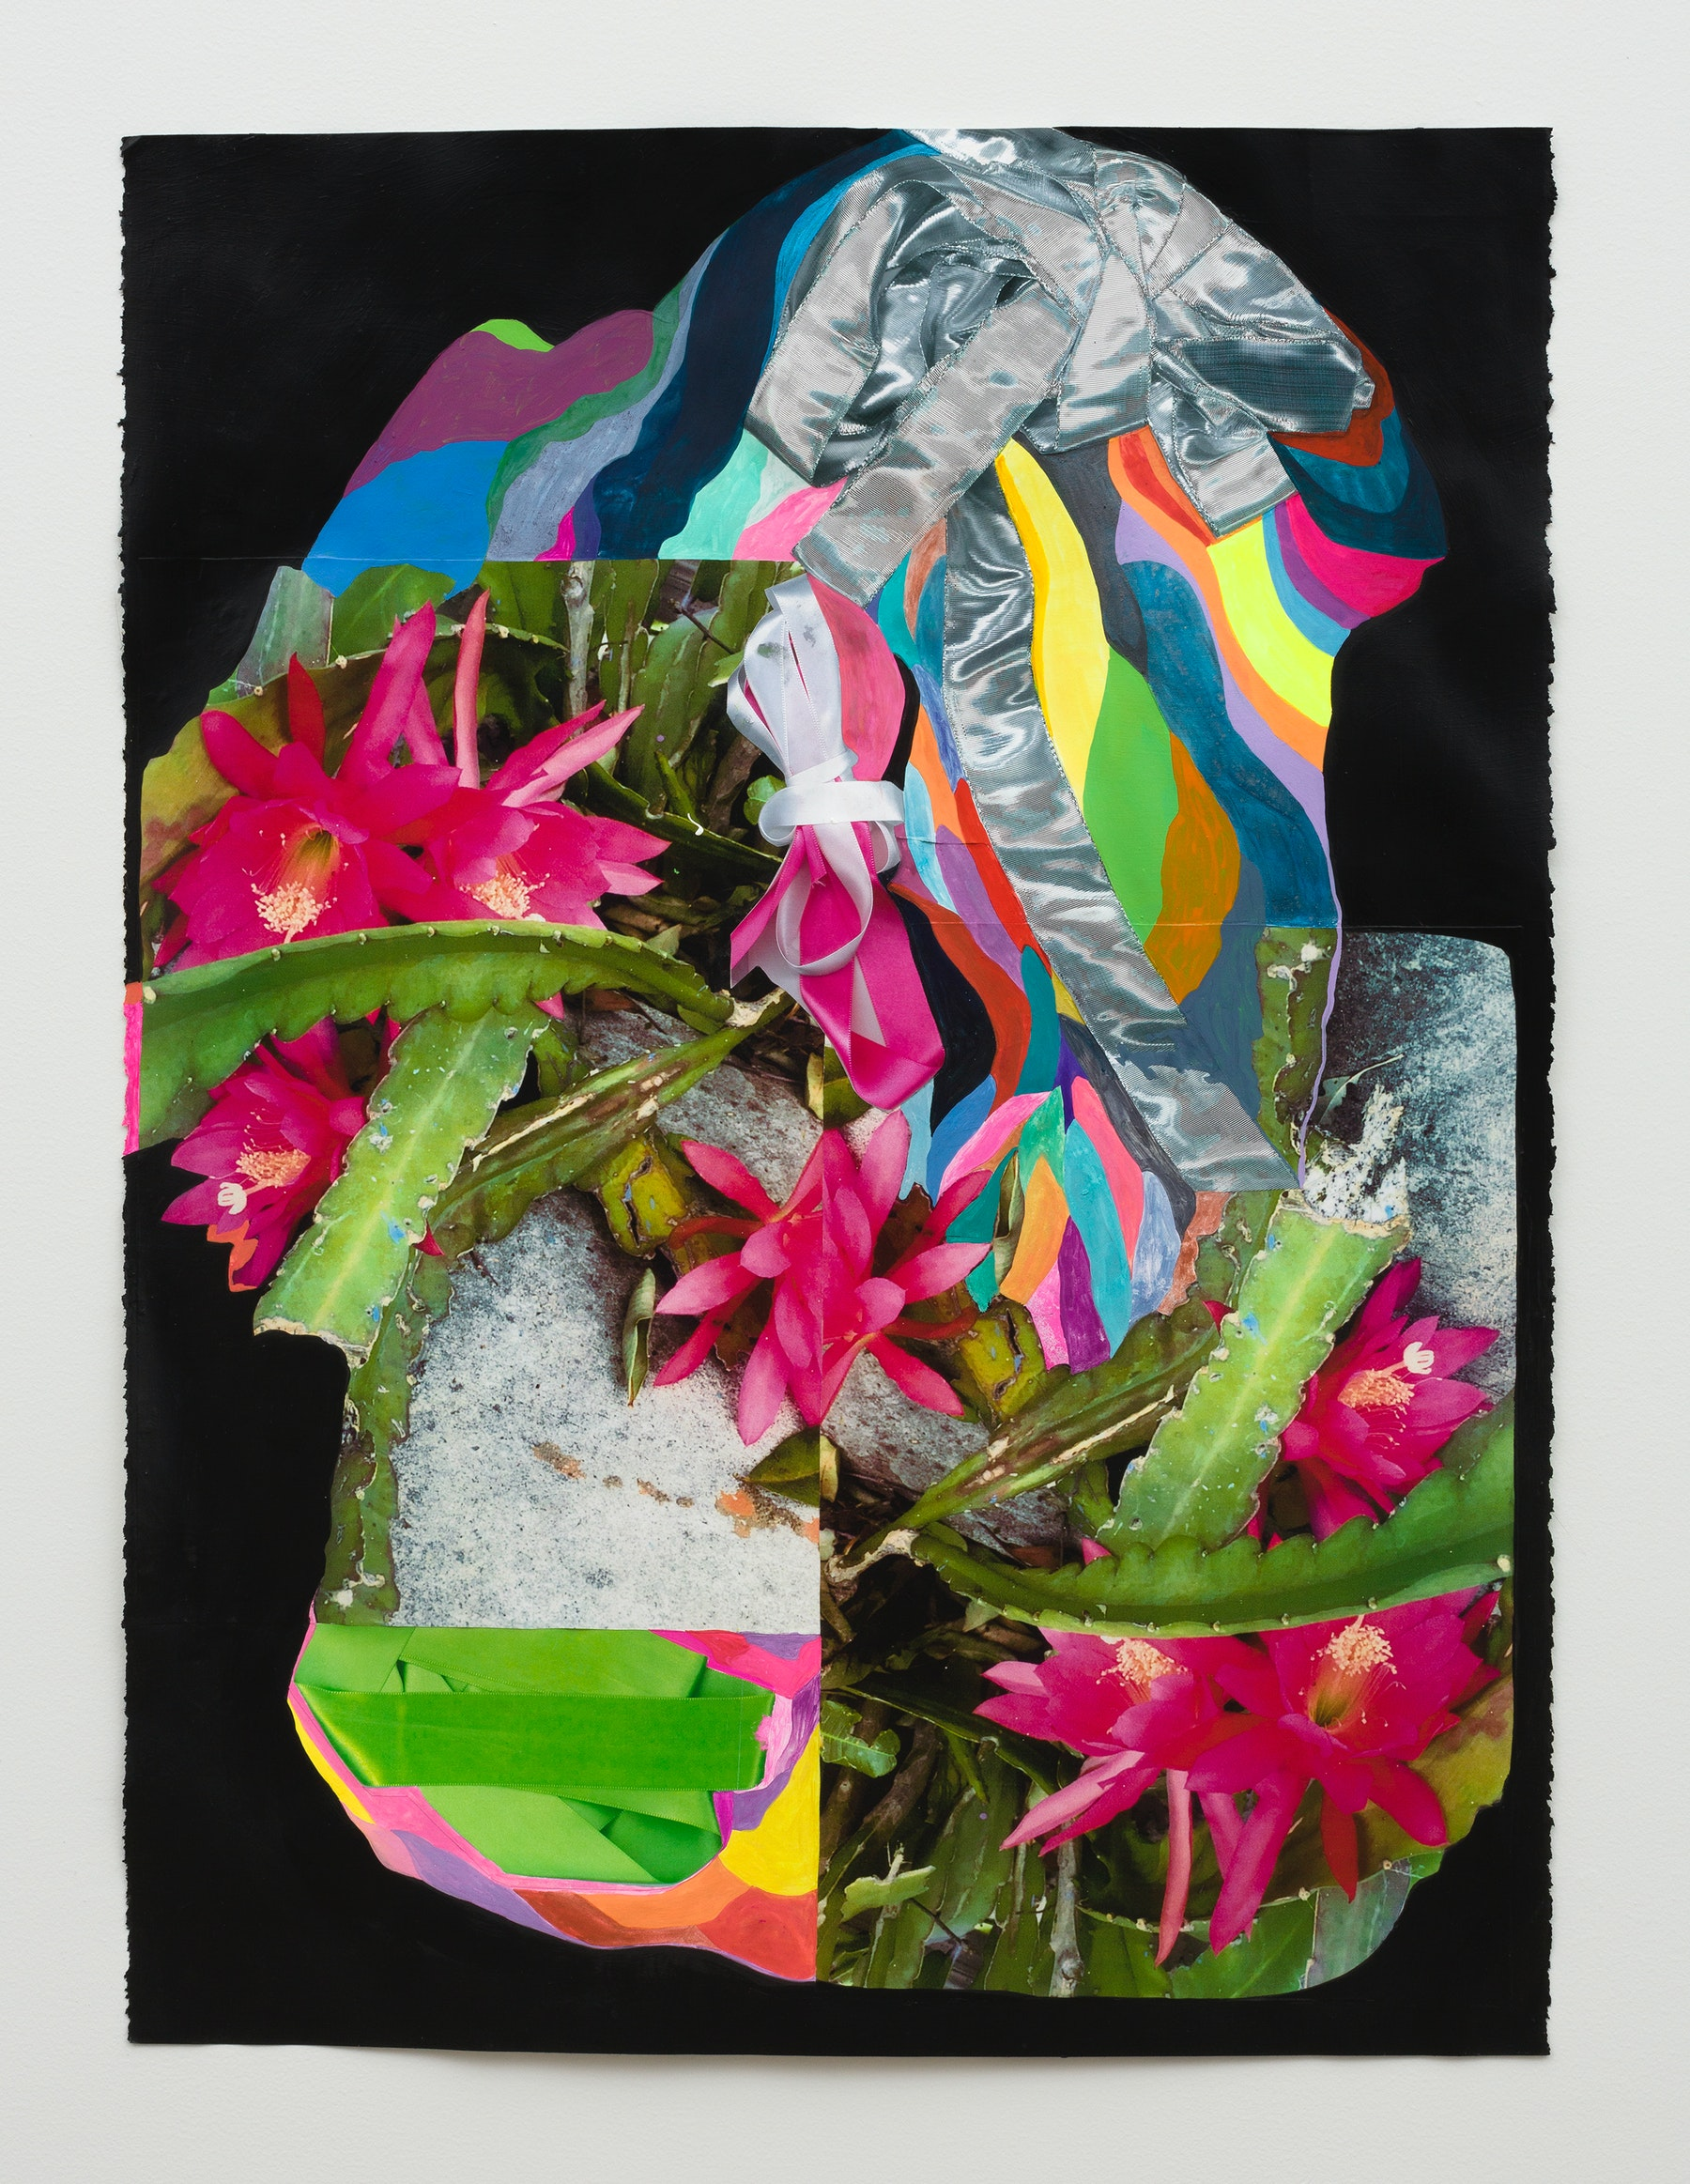 """Sarah Cain """"ribbons & plants,"""" 2020 Gouache, latex, acrylic and color copies on paper 30 x 22"""" [HxW] (76.2 x 55.88 cm) Inventory #CAS131 Courtesy of the artist and Vielmetter Los Angeles Photo credit: Jeff McLane"""